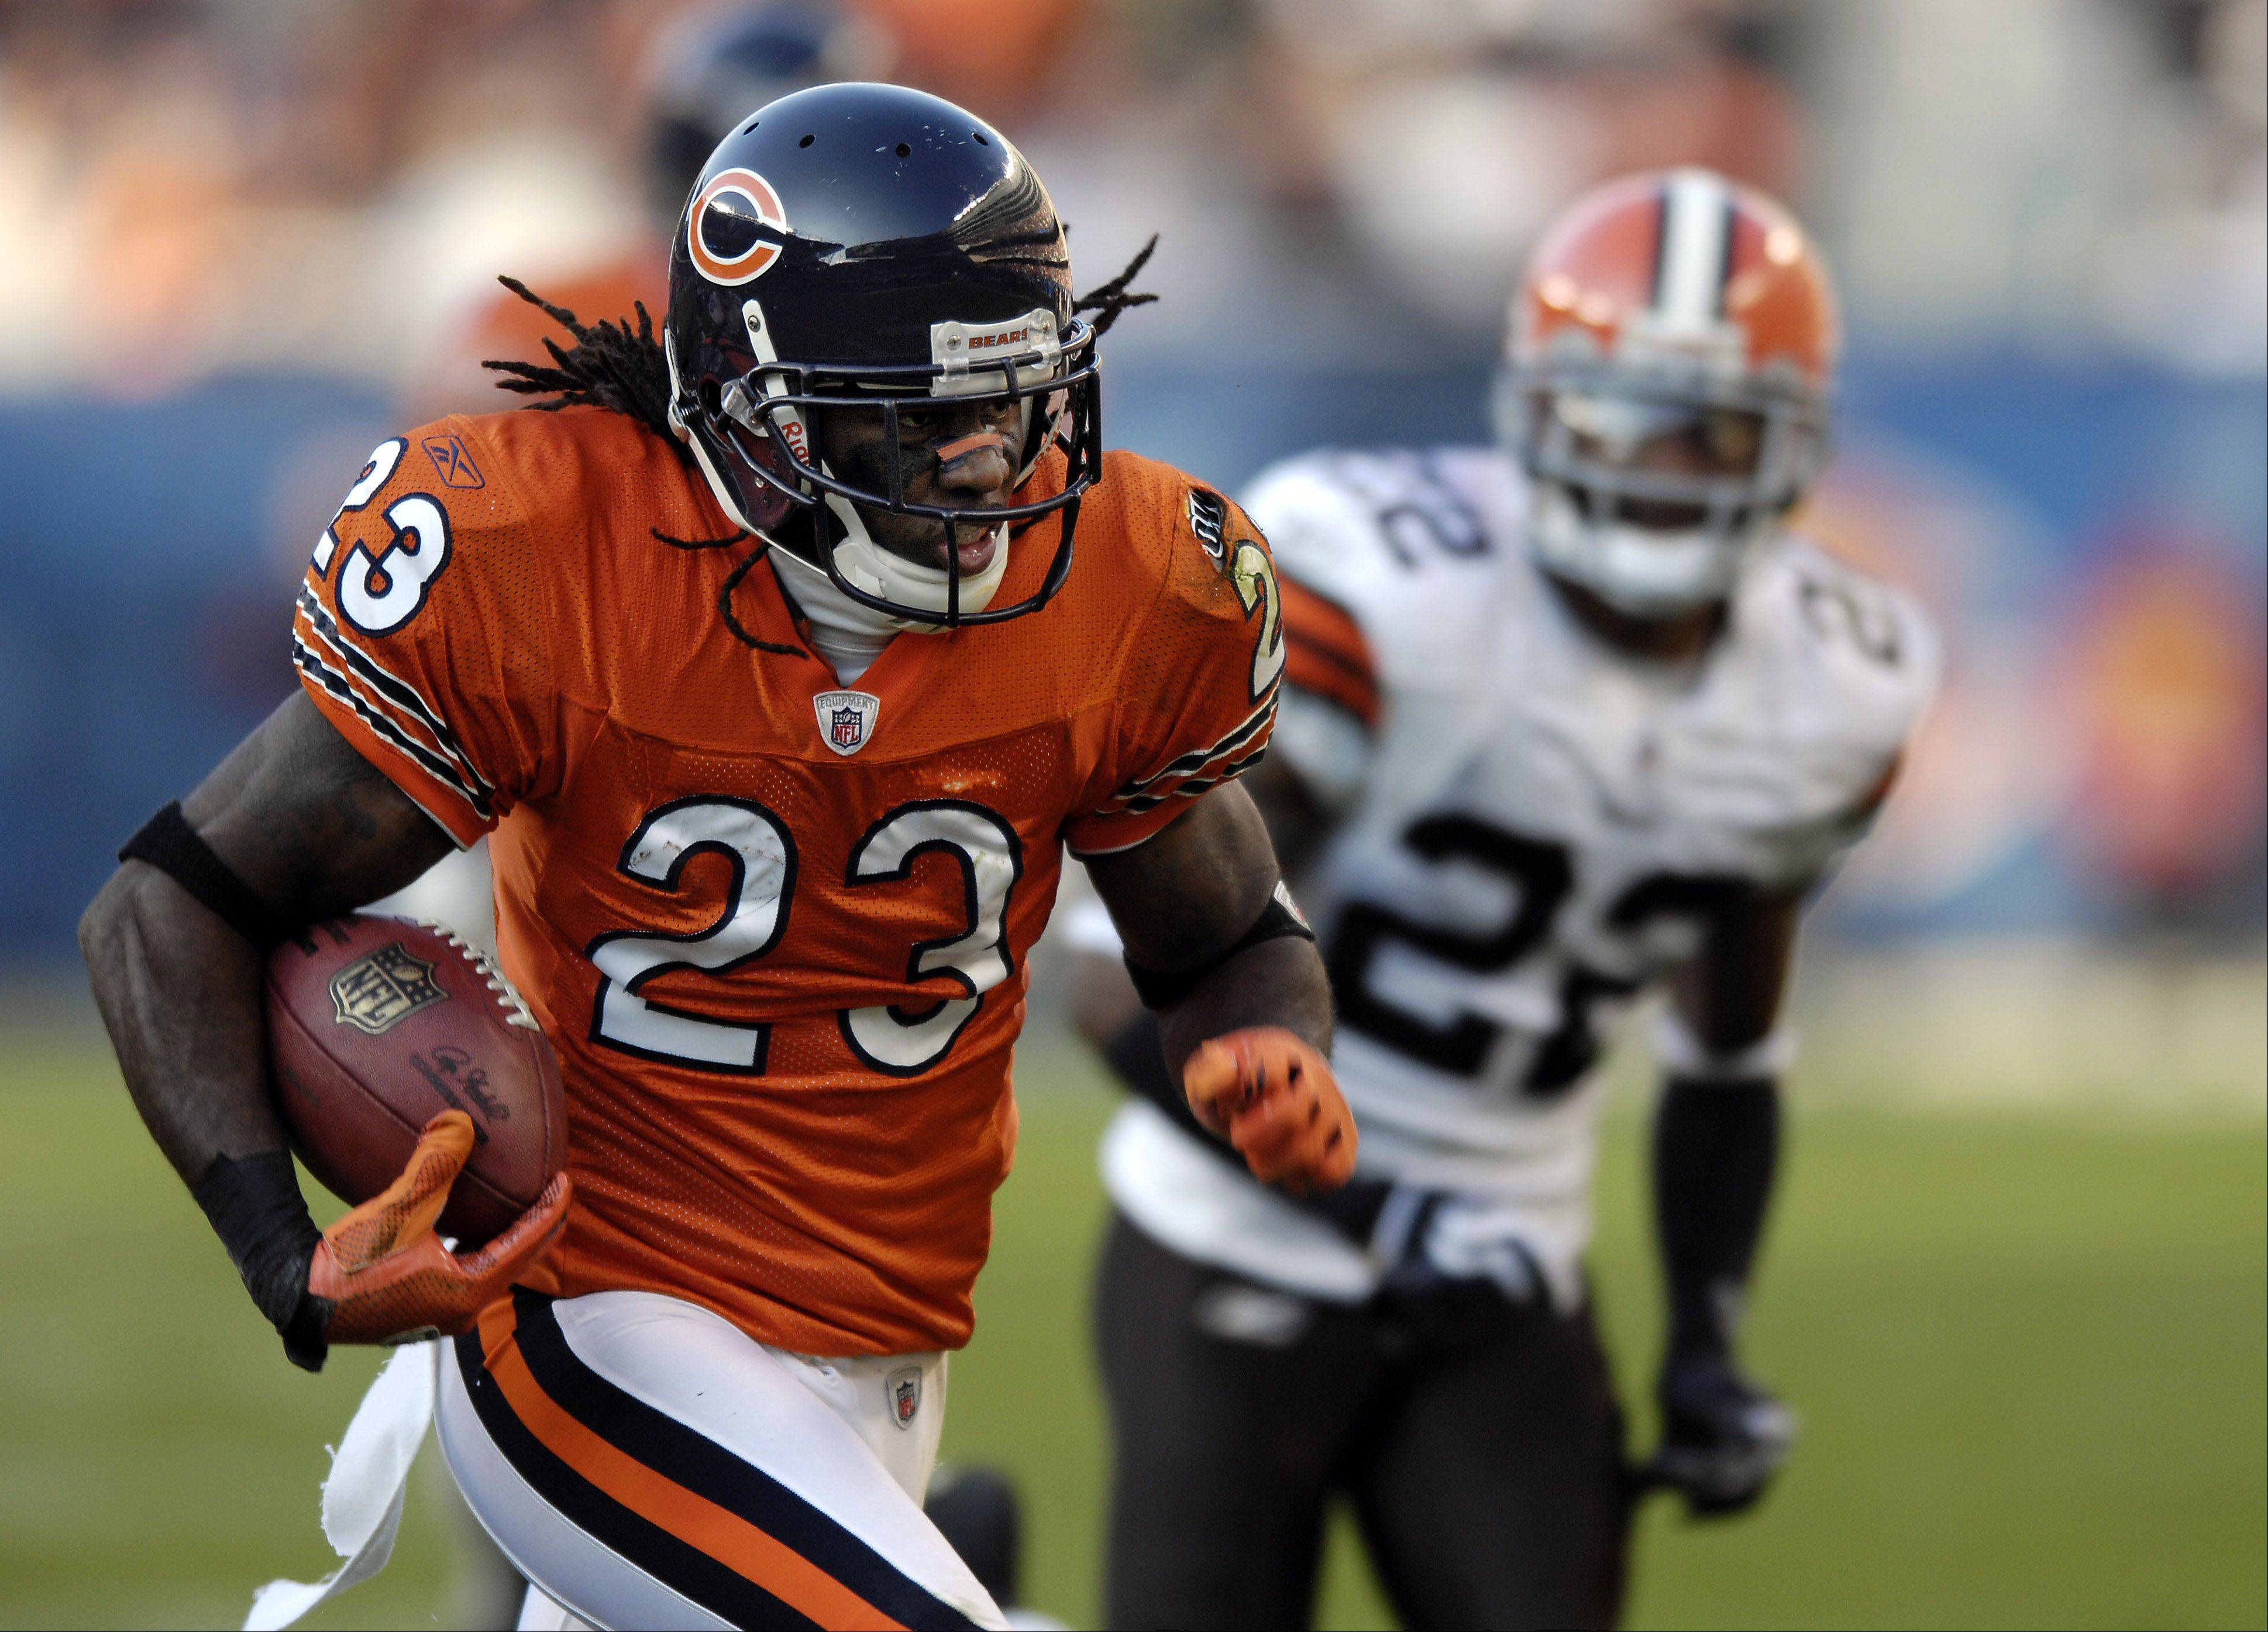 Mark Welsh/mwelsh@dailyherald.com  The absence of Devin Hester will hurt the Bears' return teams Sunday at Solider Field against the Lions.